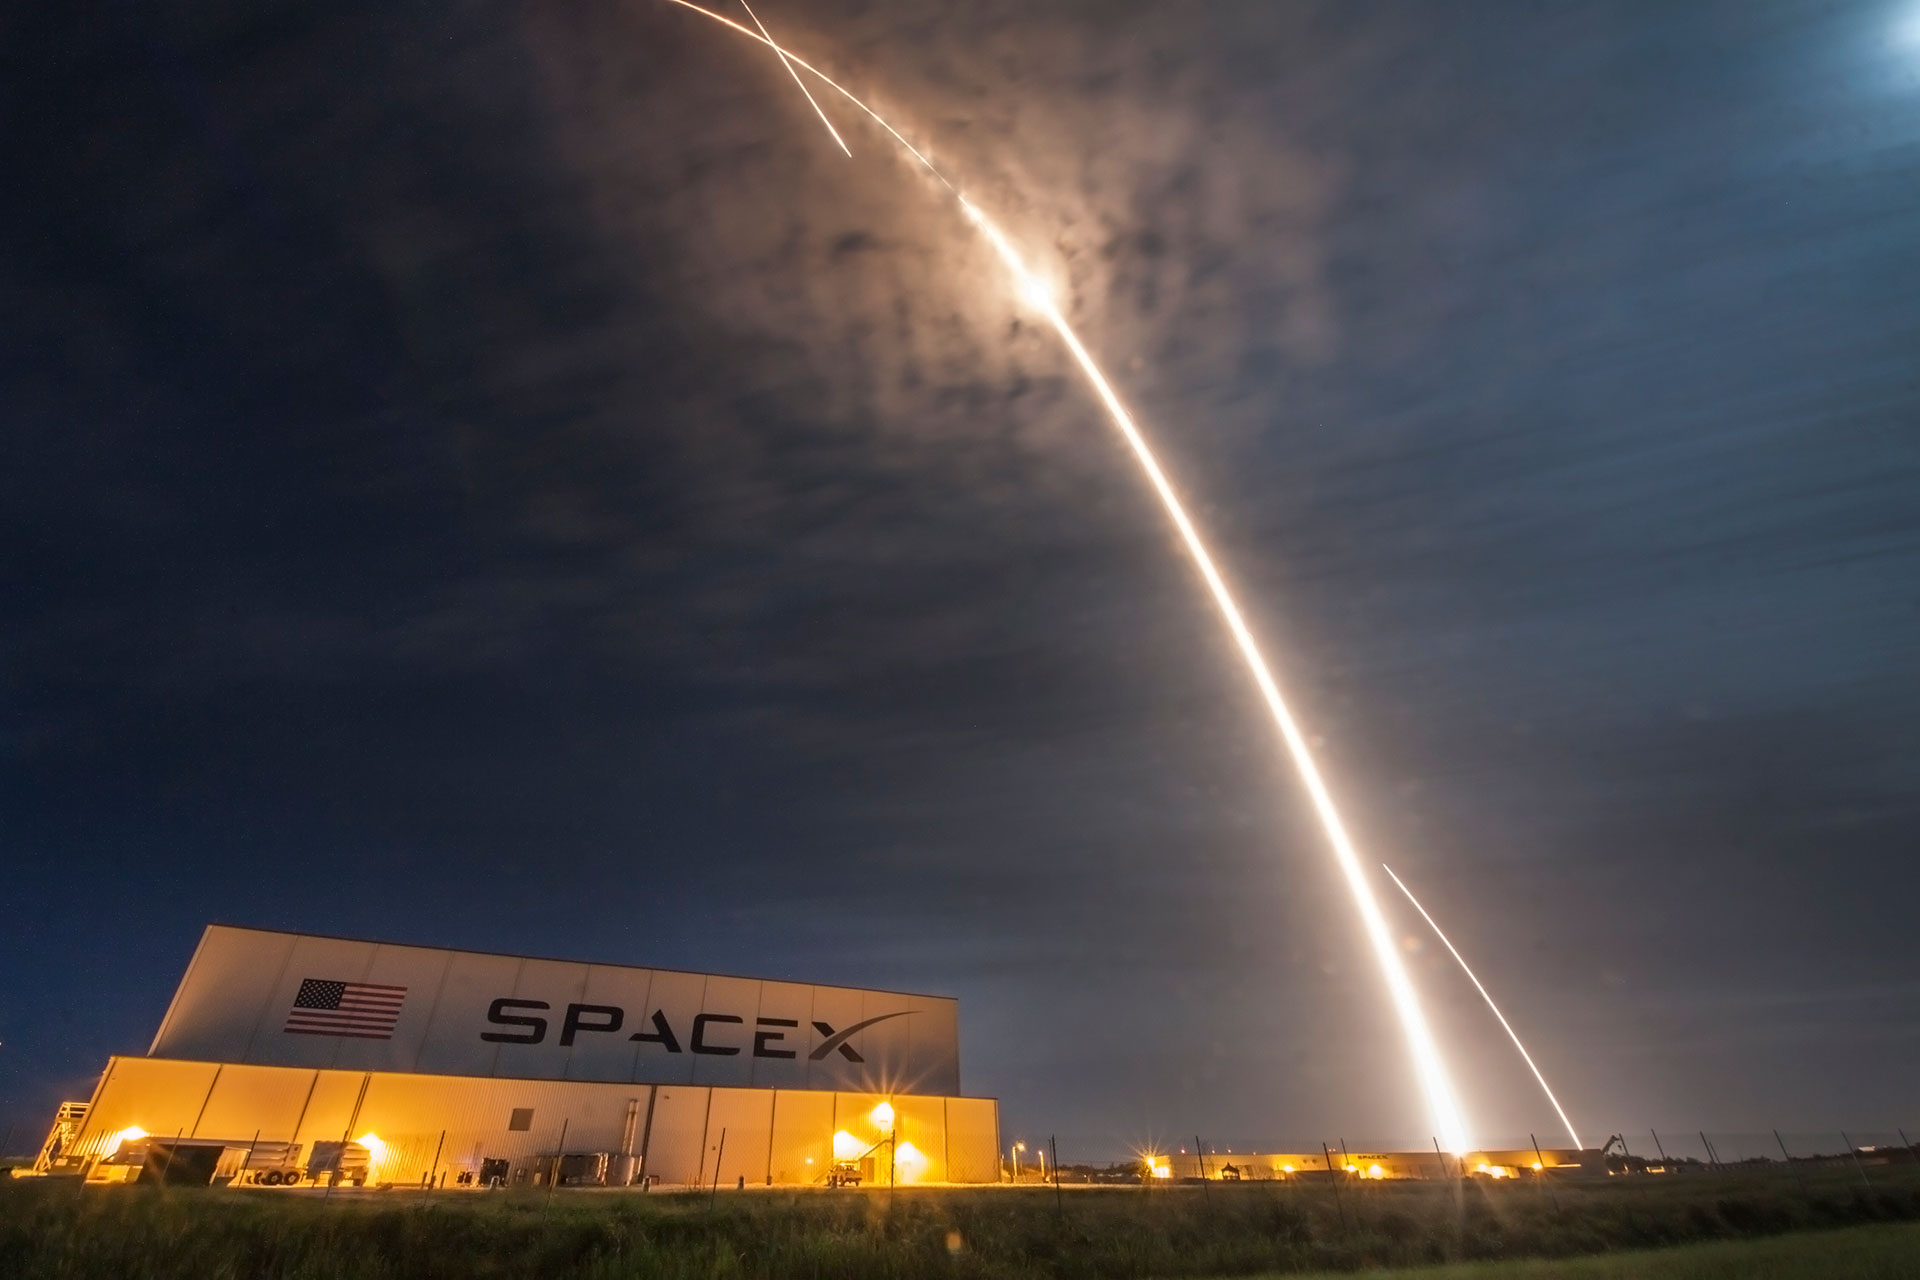 SpaceX CRS 9 rocket launch